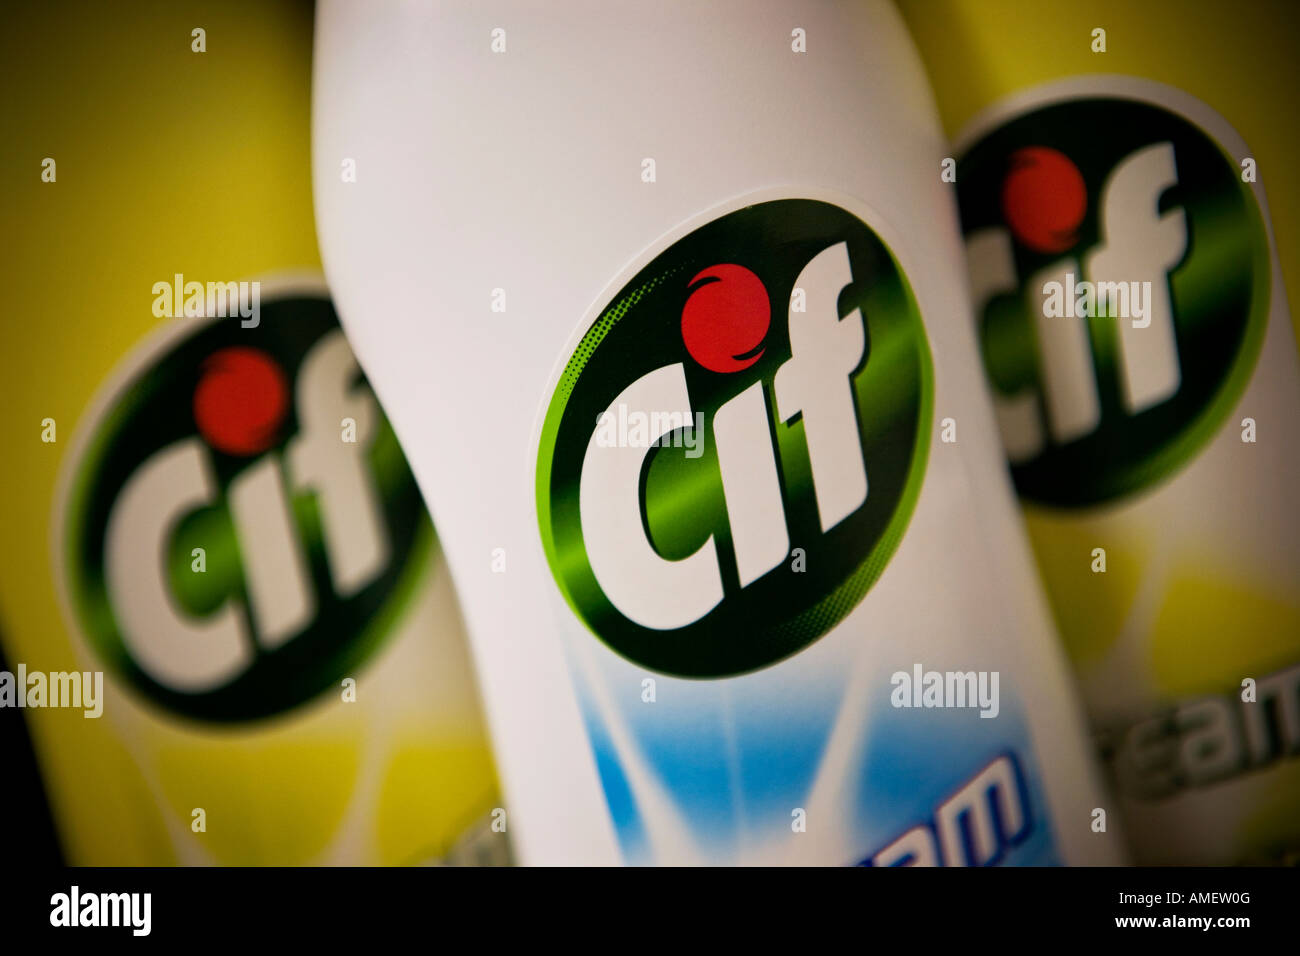 Cif cleaning cream Cif is a Unilever brand - Stock Image